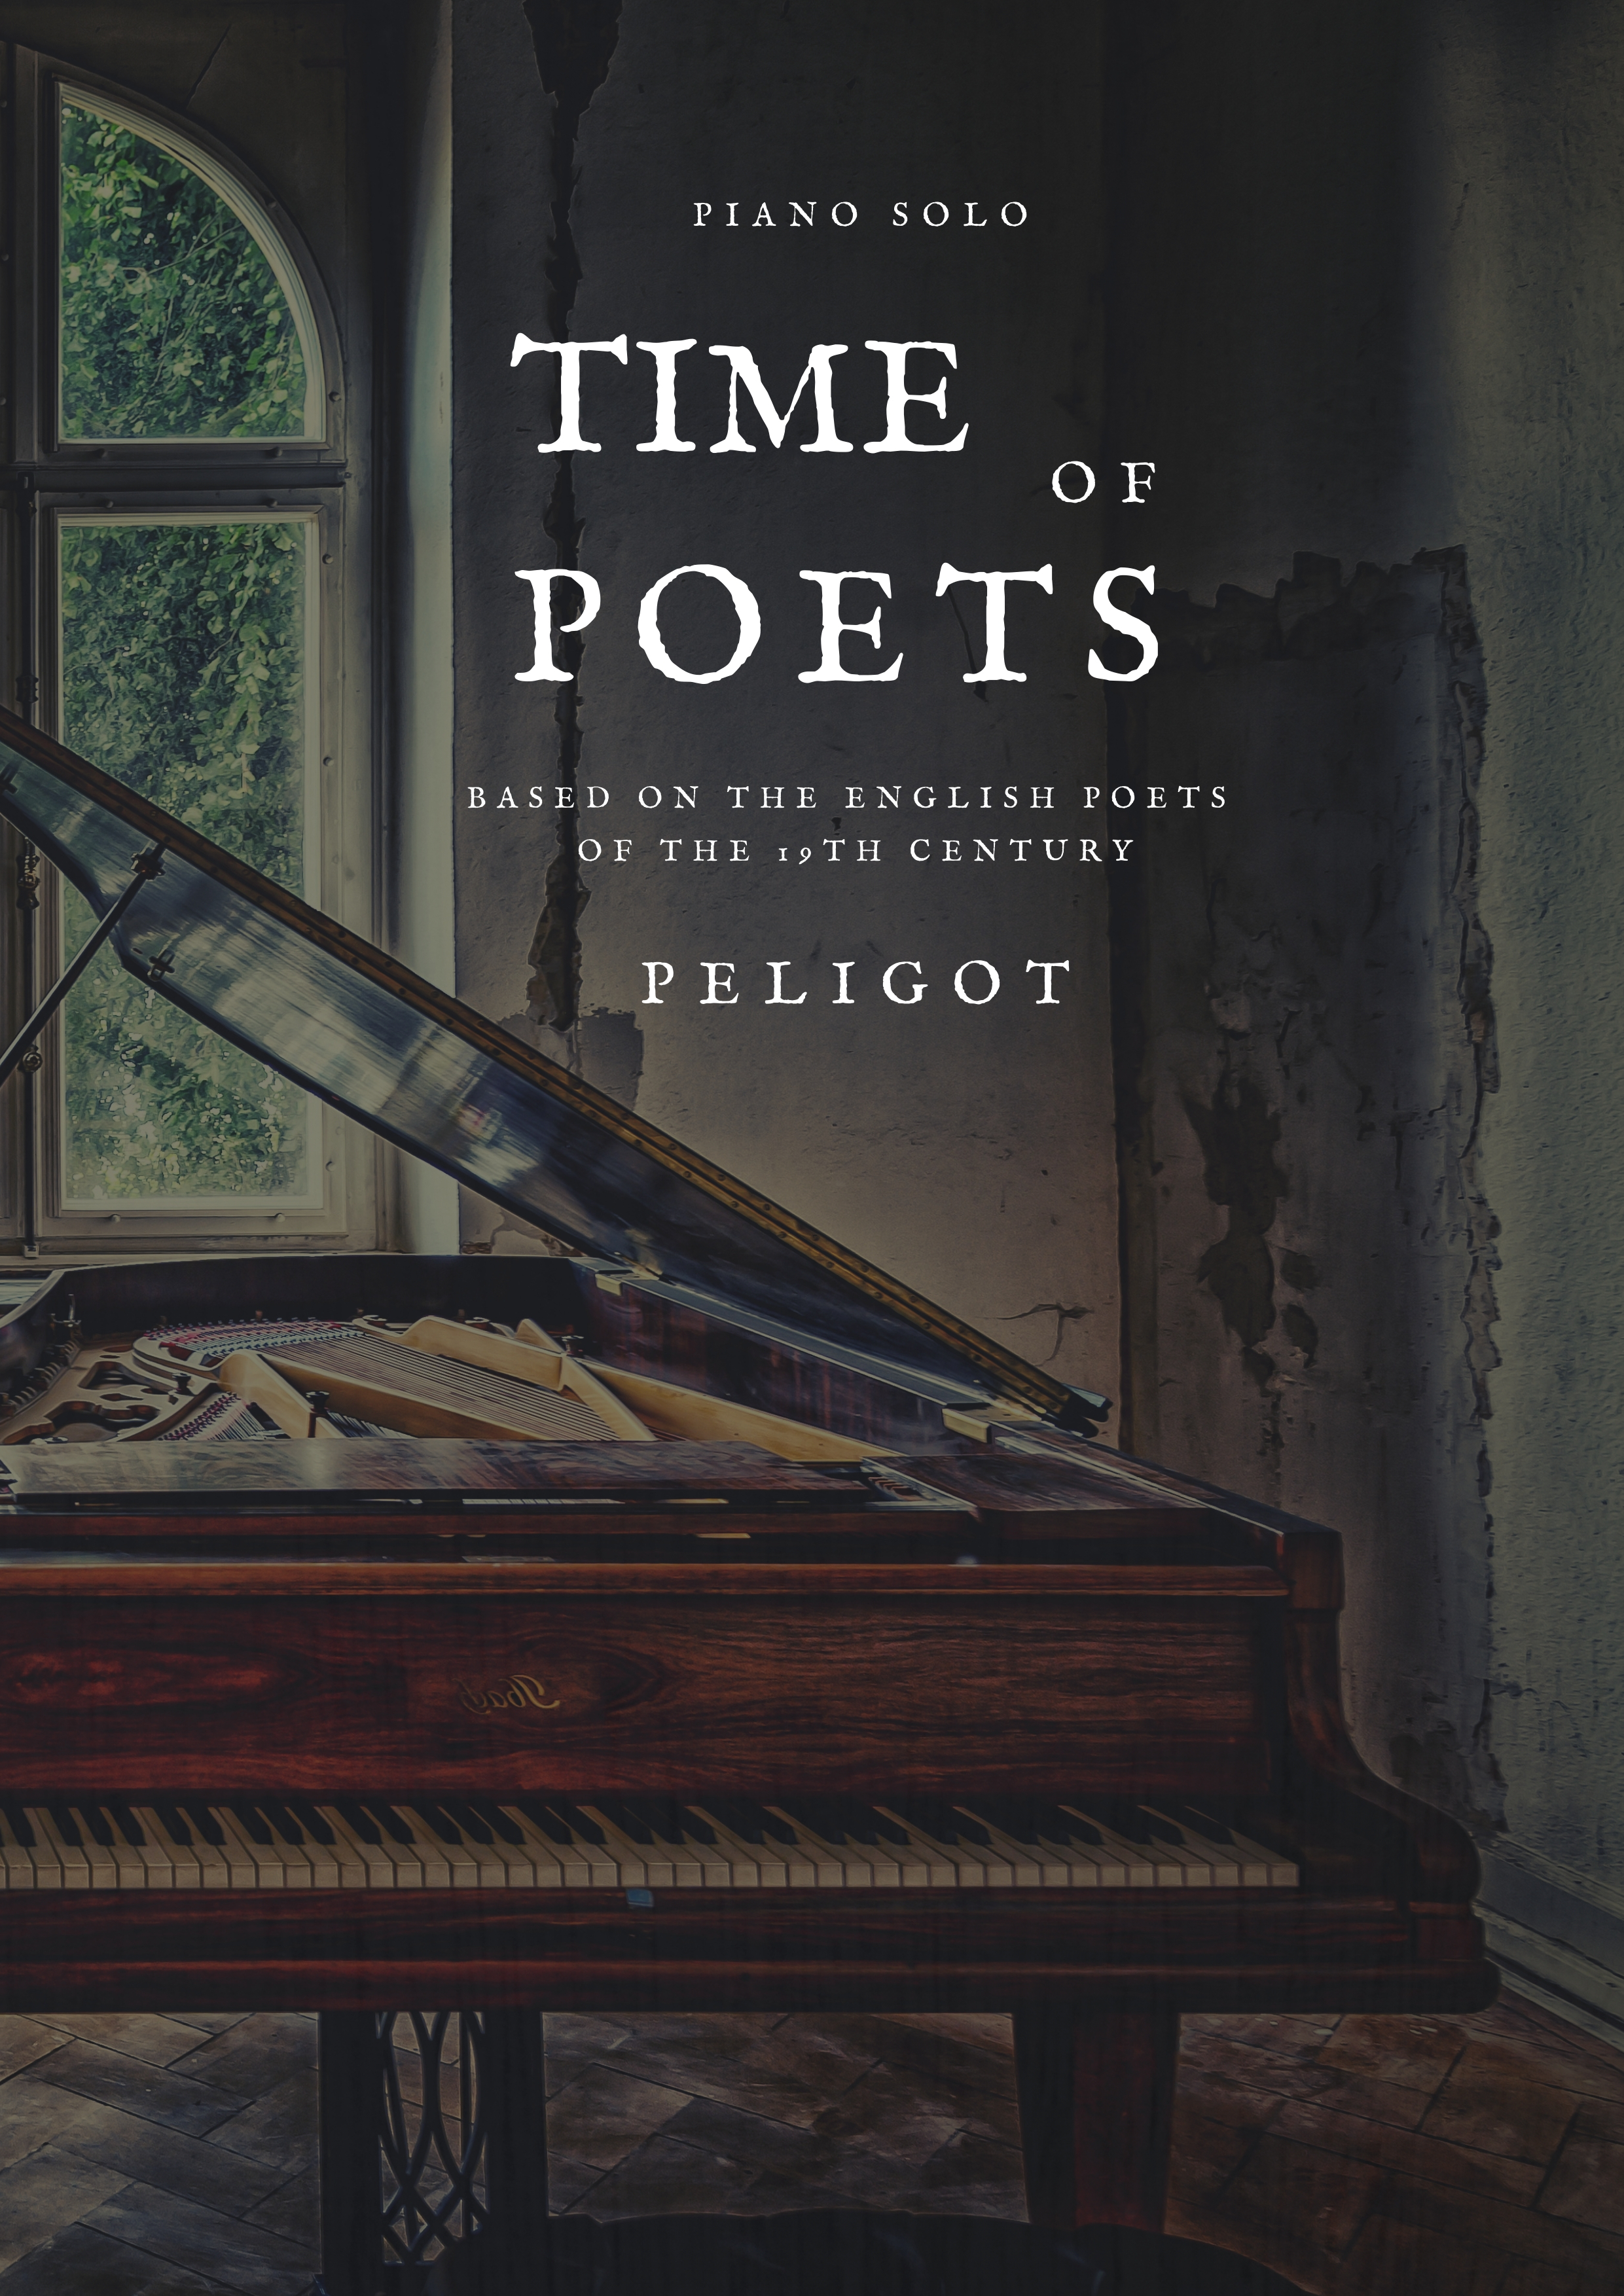 Time of Poets